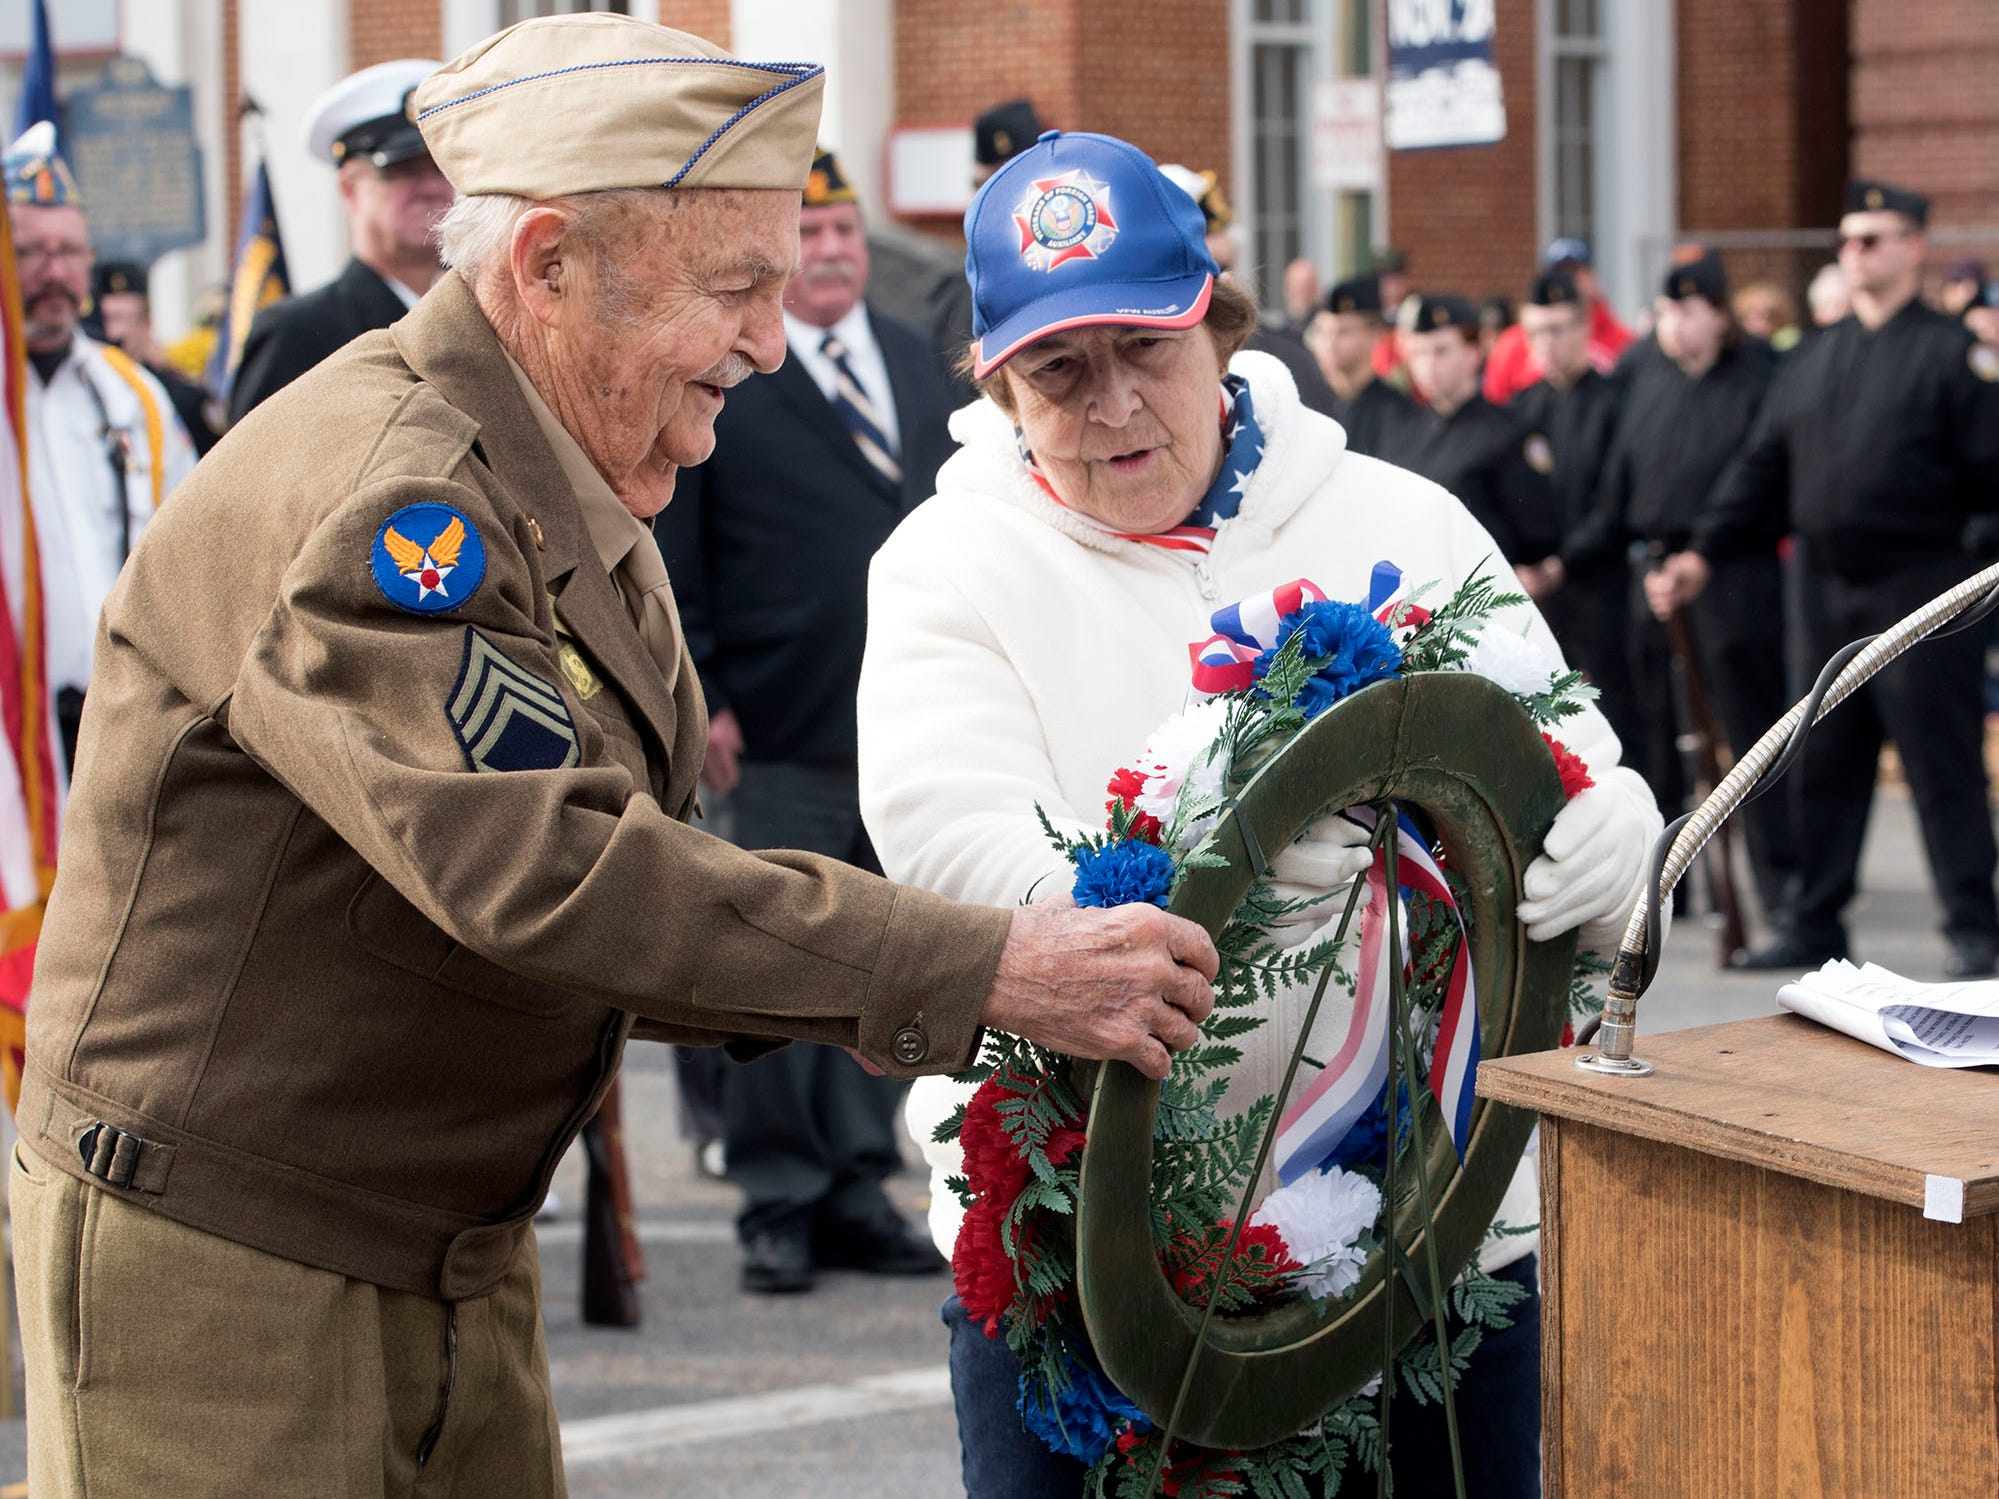 David Demichei and Julie Marker lay the wreath at Chambersburg Memorial Square. The Veterans Day Parade and ceremony to honor members of the military was held Monday, November 12, 2018 along Lincoln Way East and at Memorial Square.